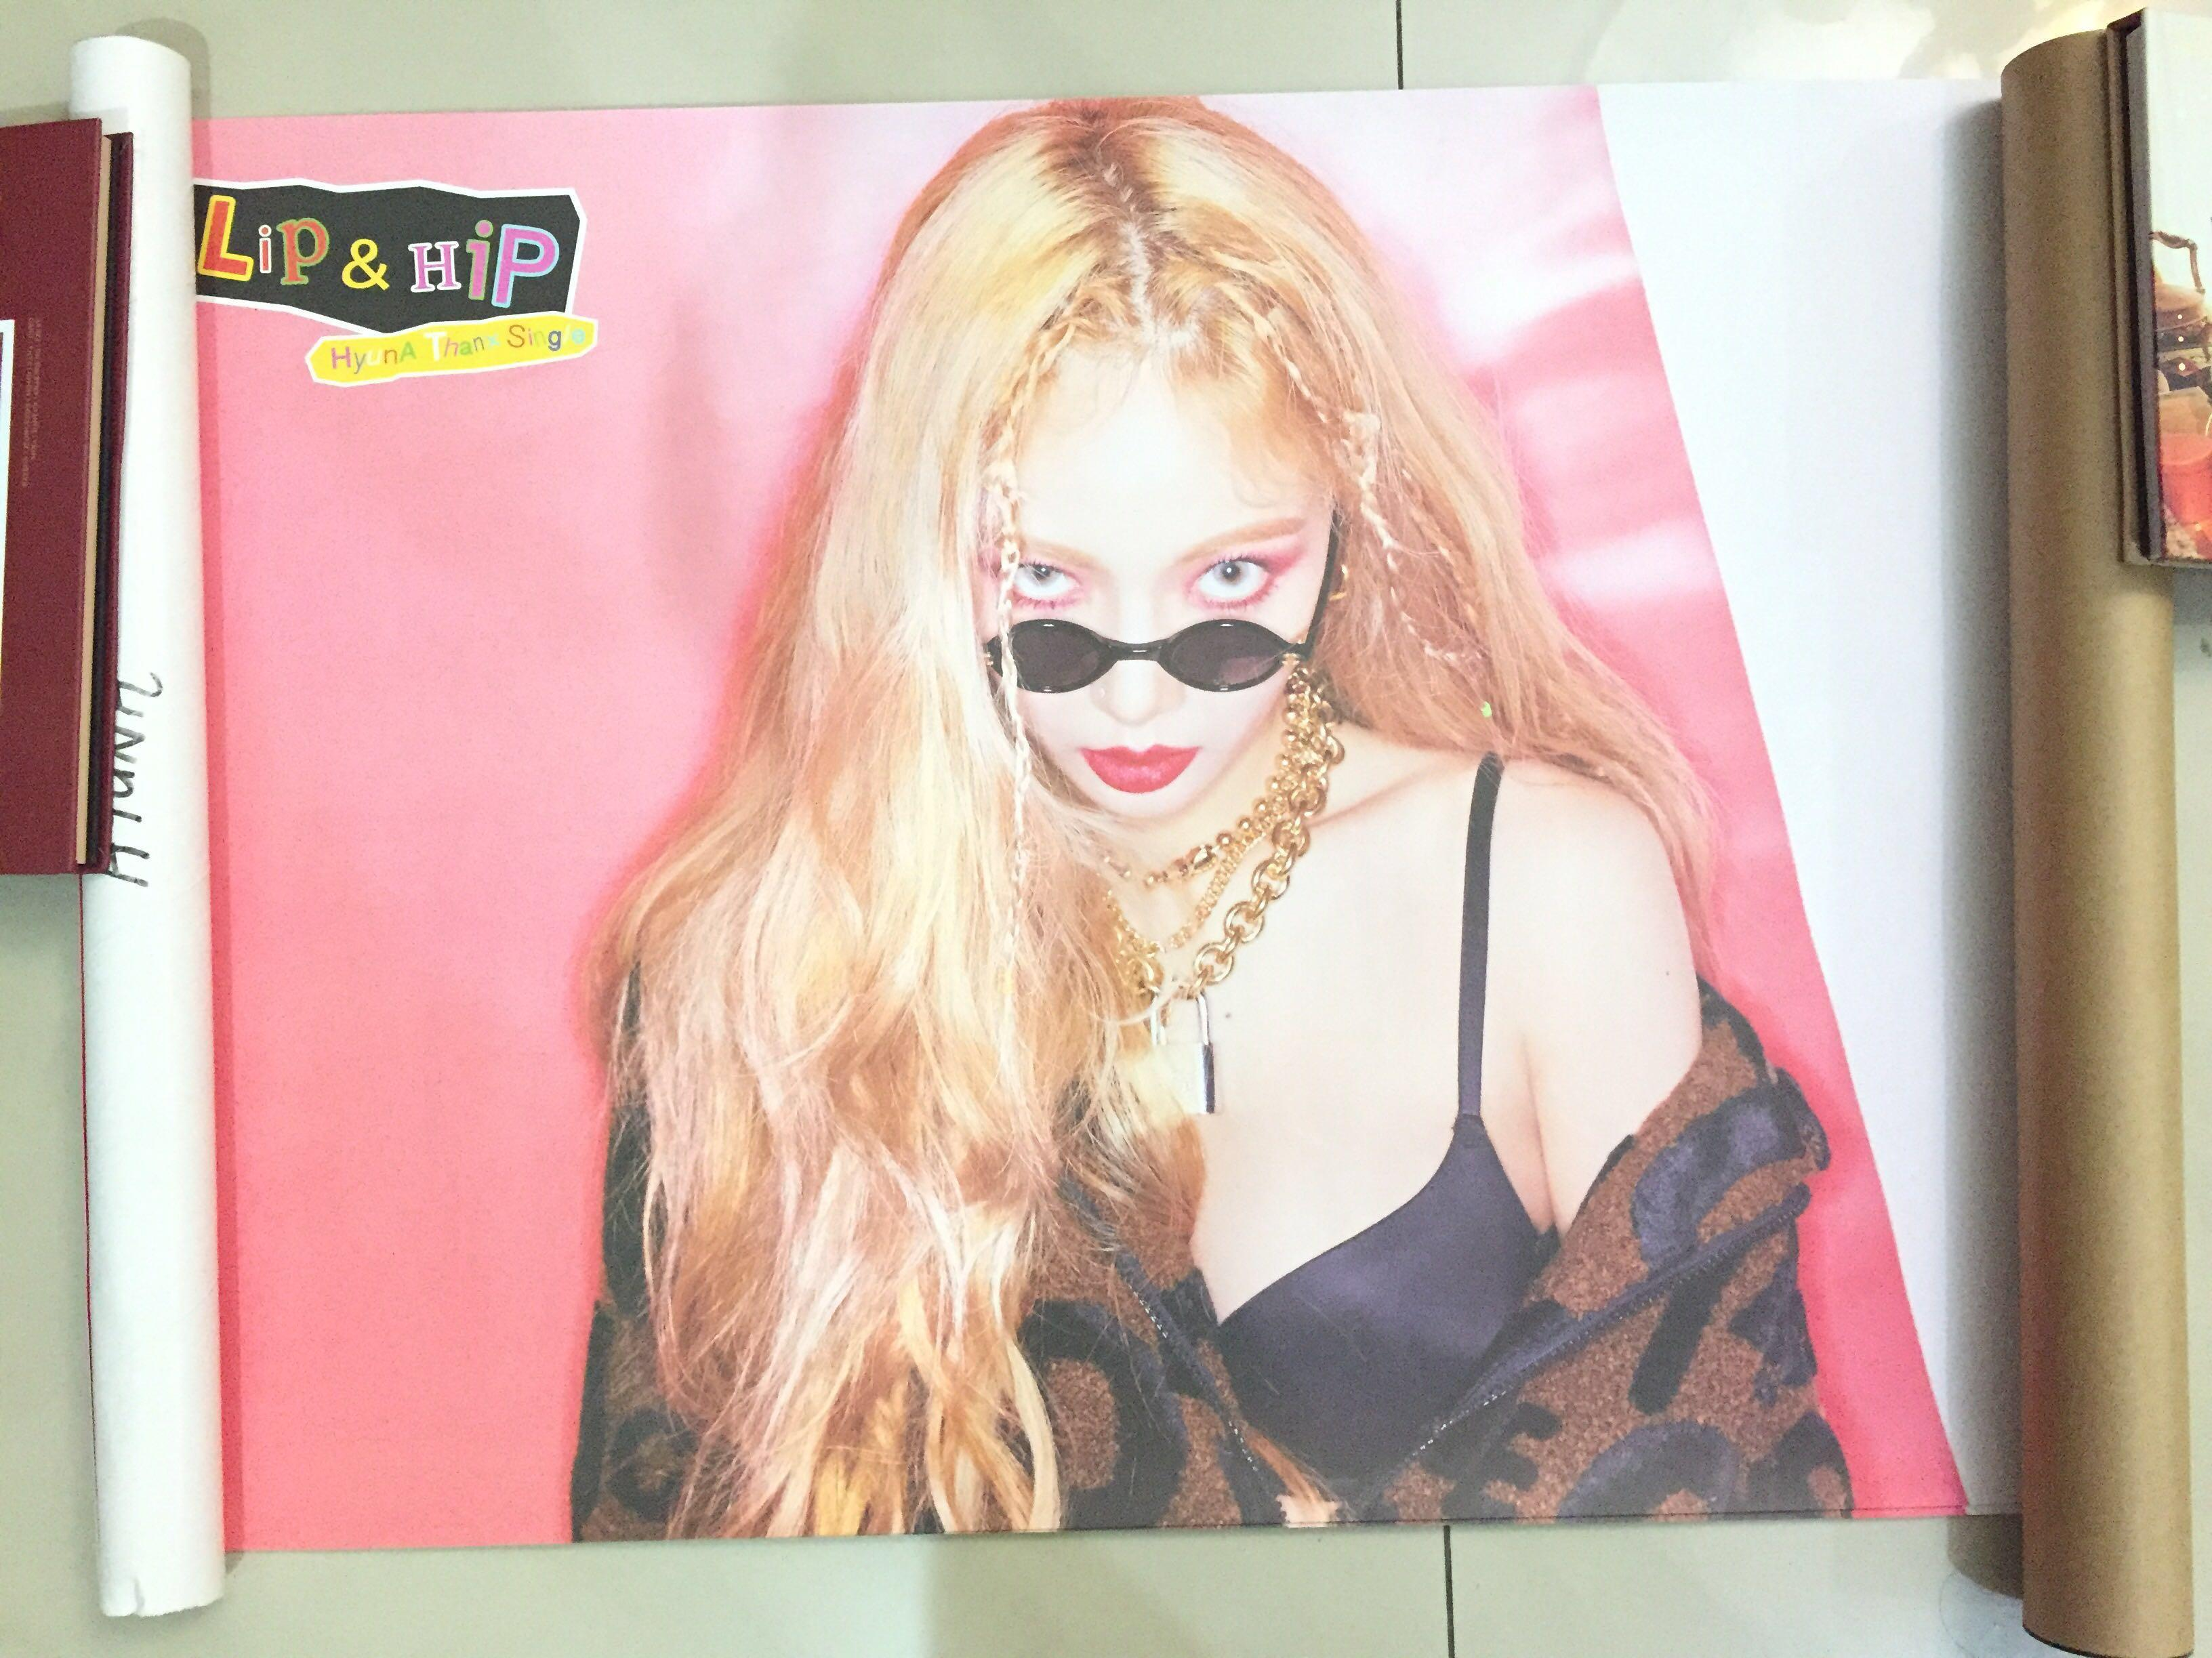 [WTS] HYUNA LIP AND HIP OFFICIAL POSTER